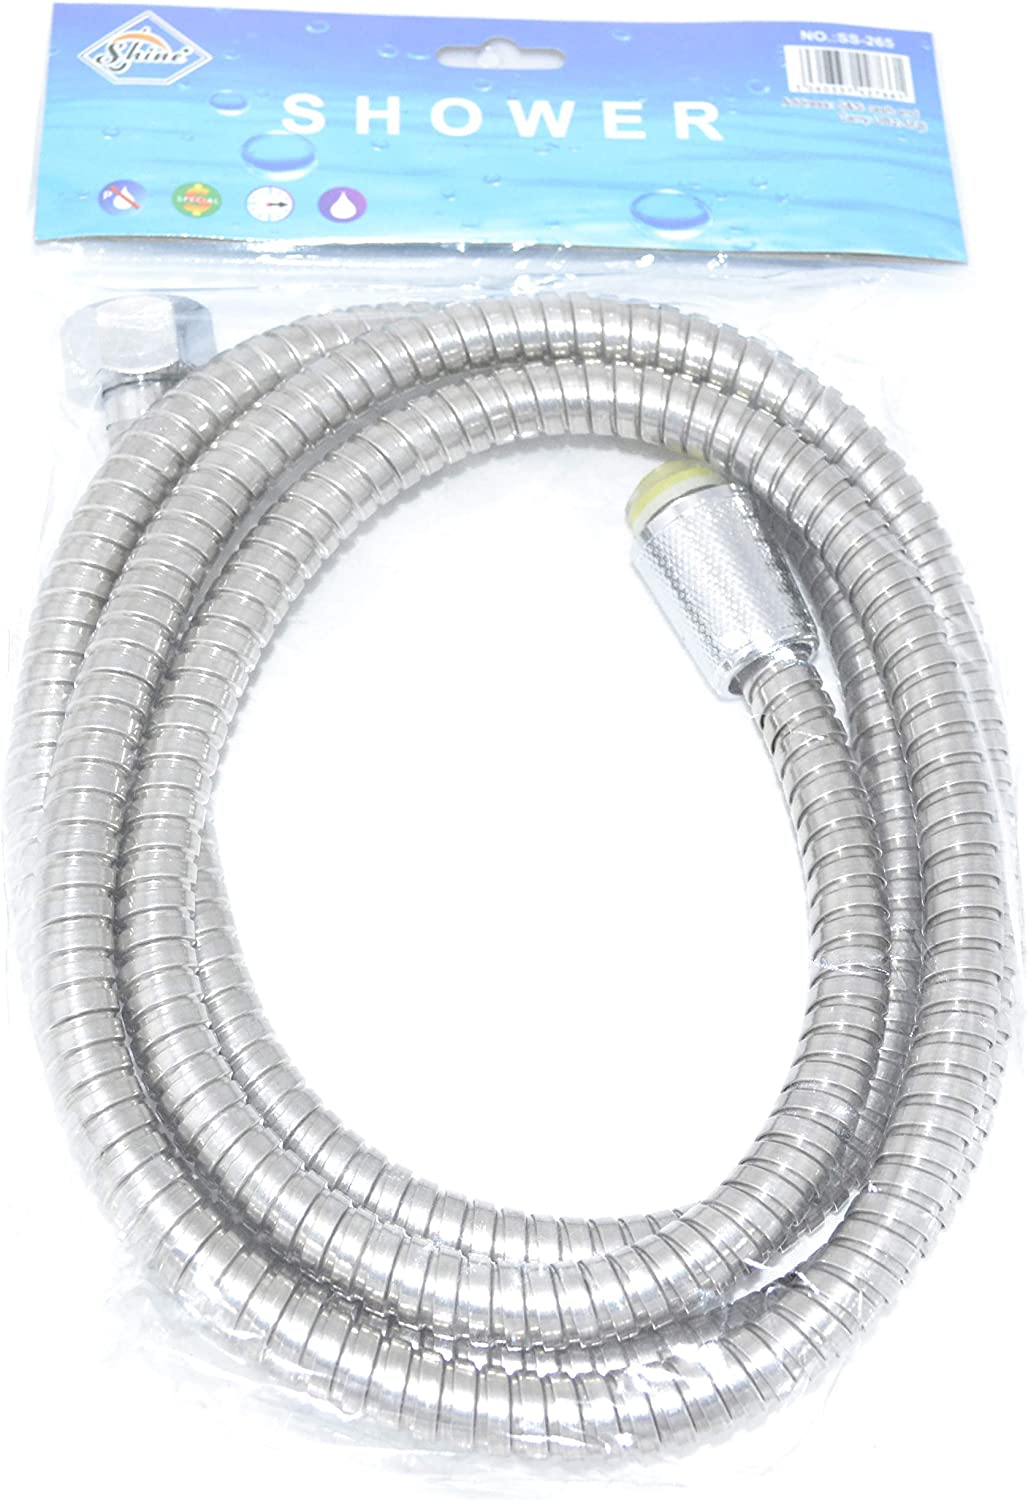 SHINE- FLEXIBLE SHOWER PIPE CHROME LOOK Bath Hose Flexible Replacement Pipe choose size 1.5m/2m/2.5m (1.5m Metre (150 CM))